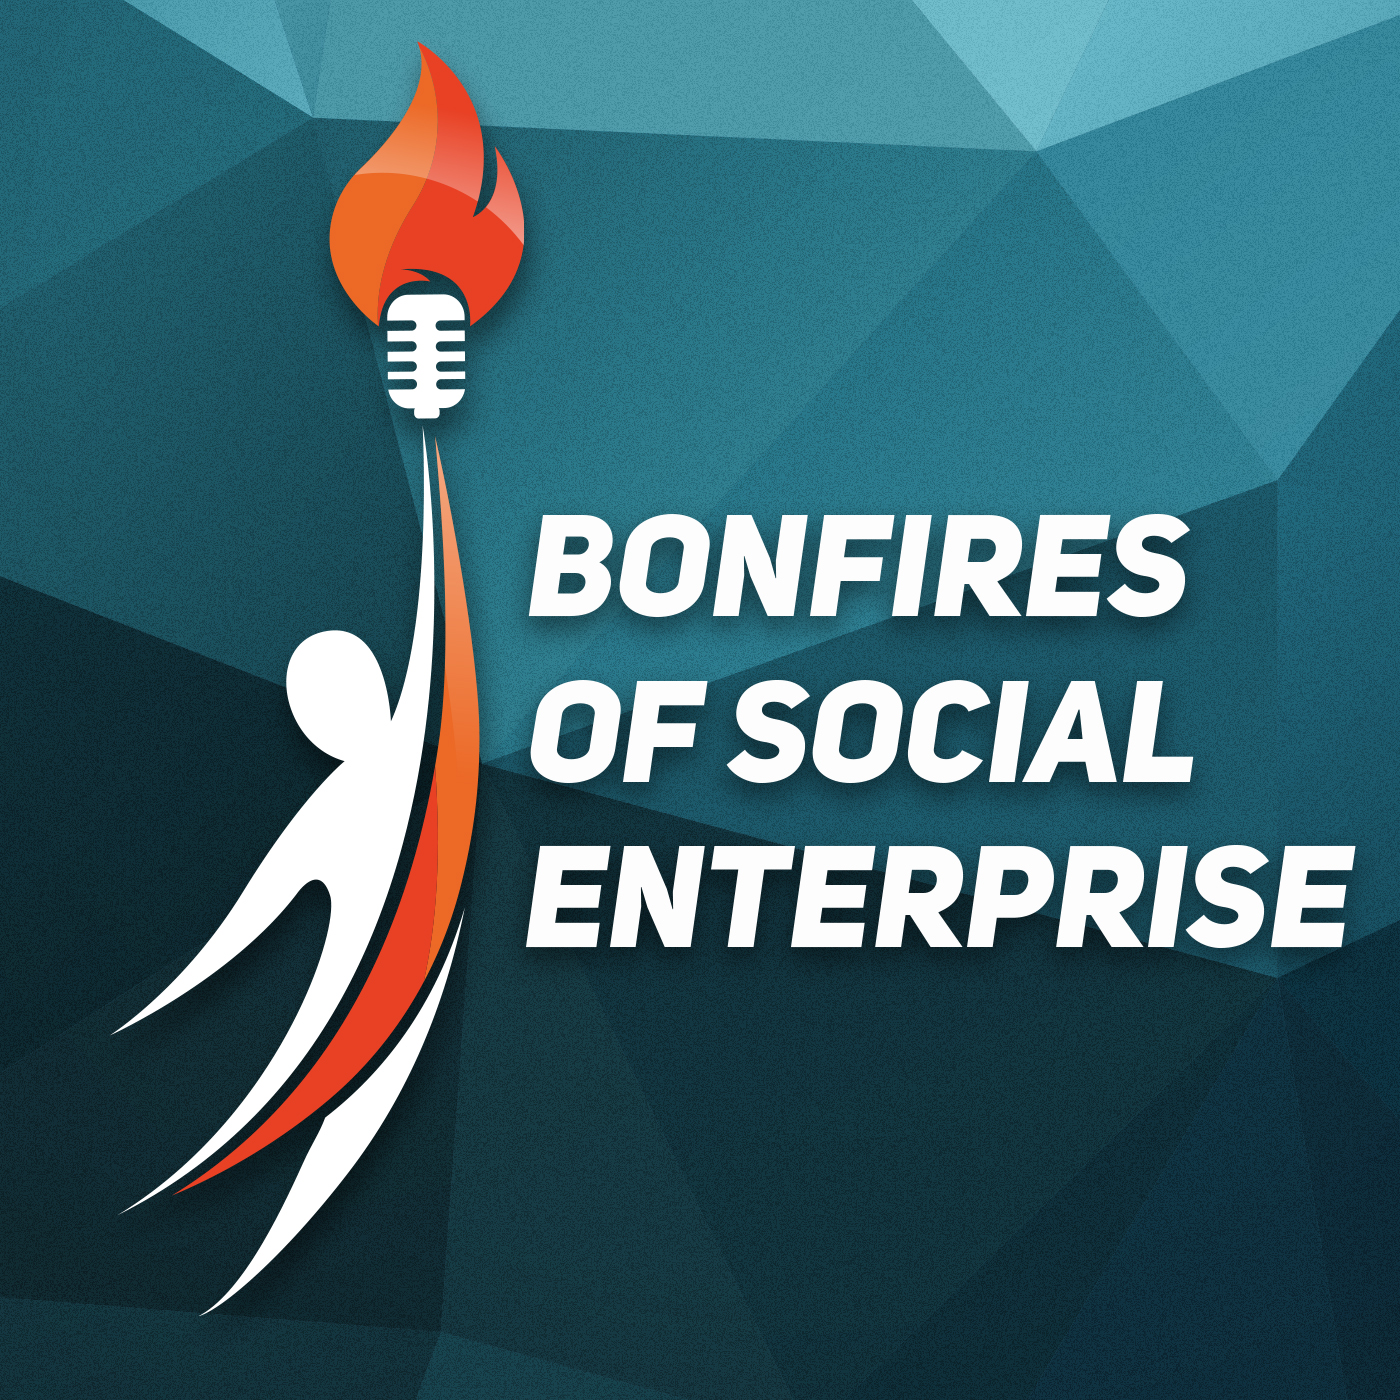 bonfires of social enterprise cover